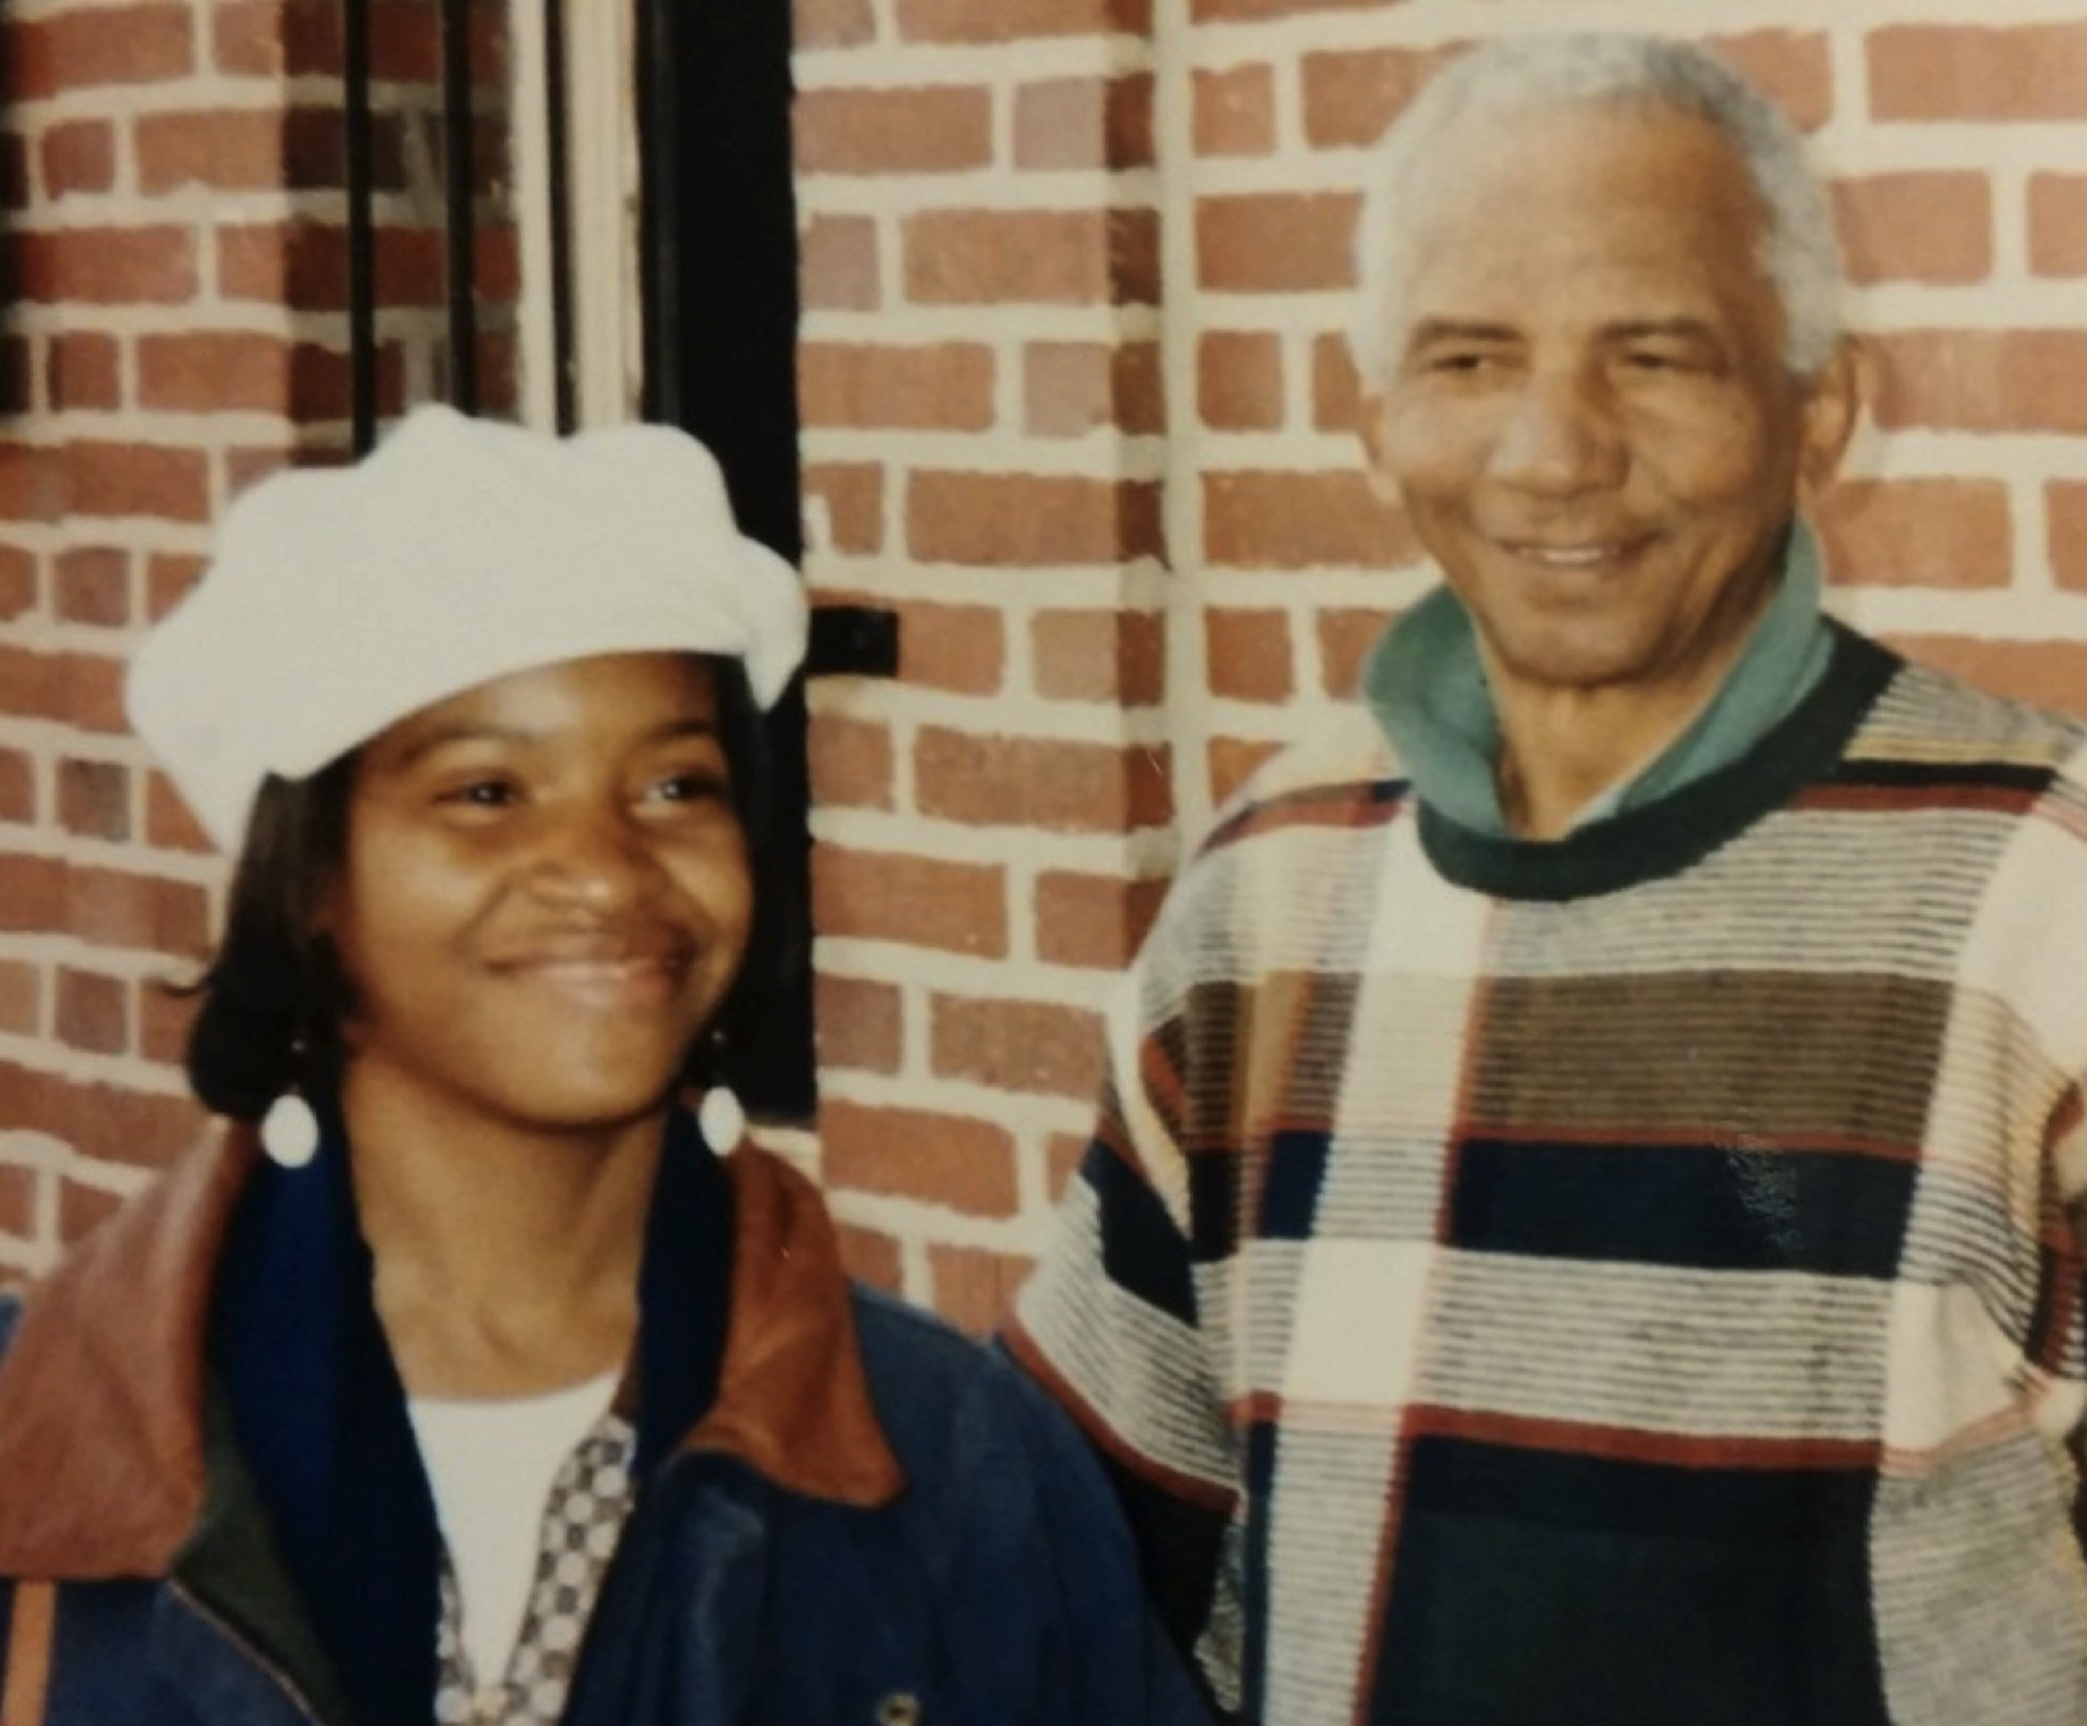 Abdur-Rahman, left, meets actor Al Freeman Jr., who played Elijah Muhammad in the movie Malcolm X, on the campus of Howard University a few years after the film's release.